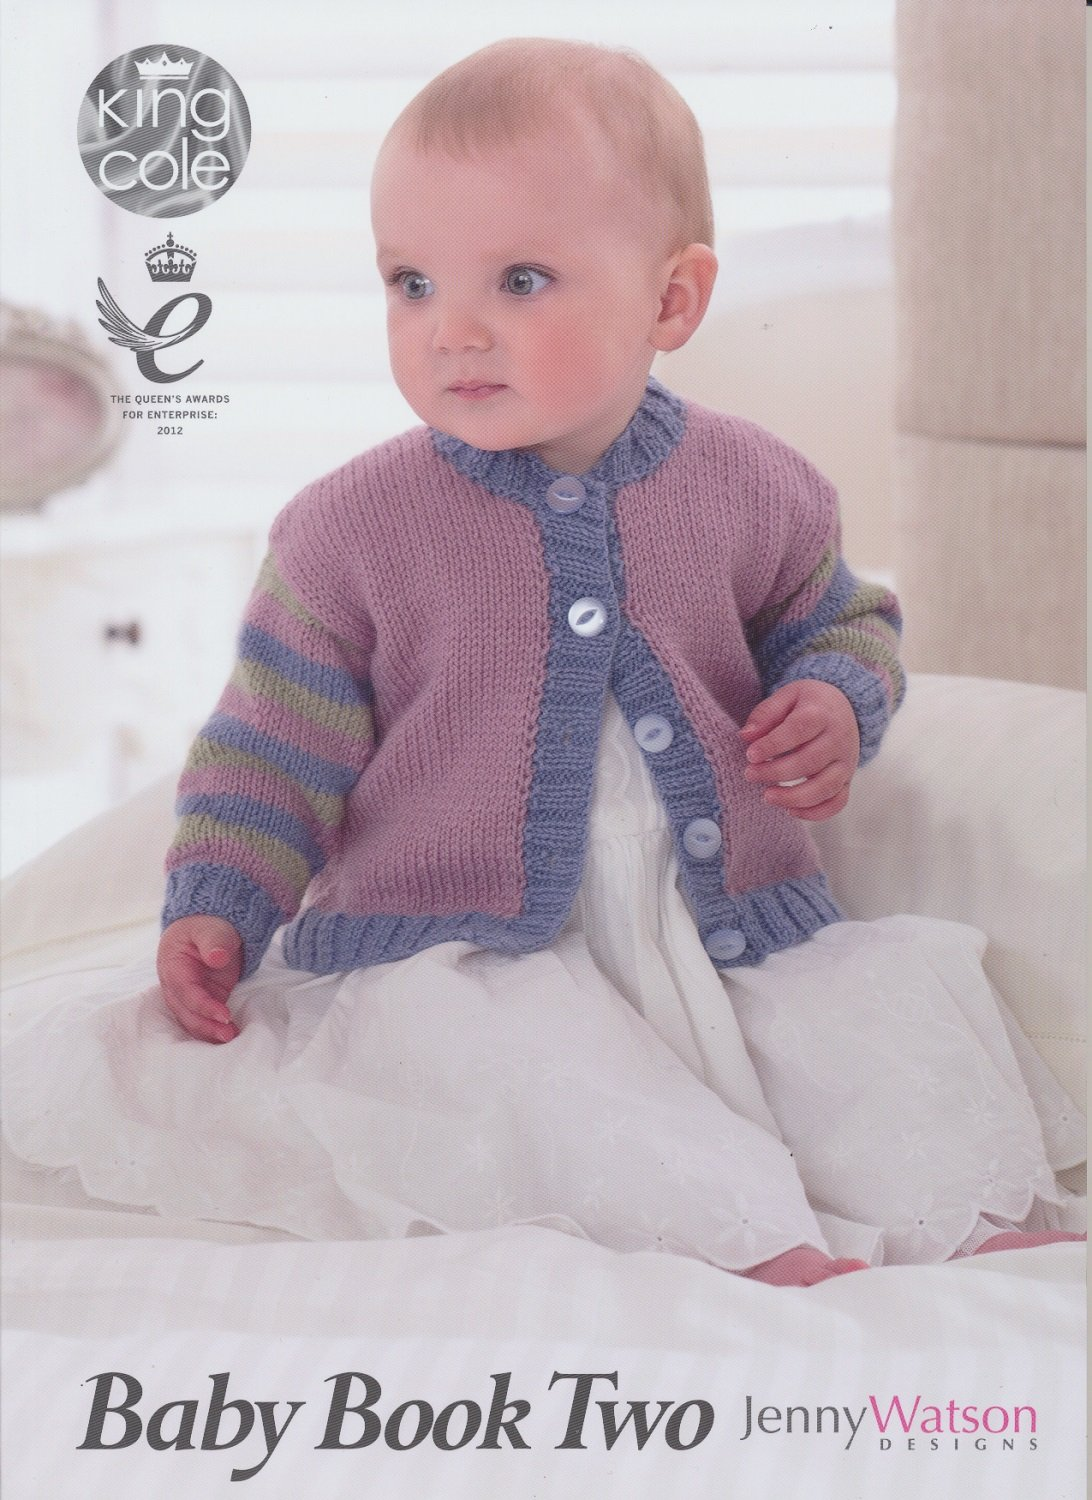 King Cole Baby Book Two Knitting Book Double Knitting Patterns Prem to 2 yrs